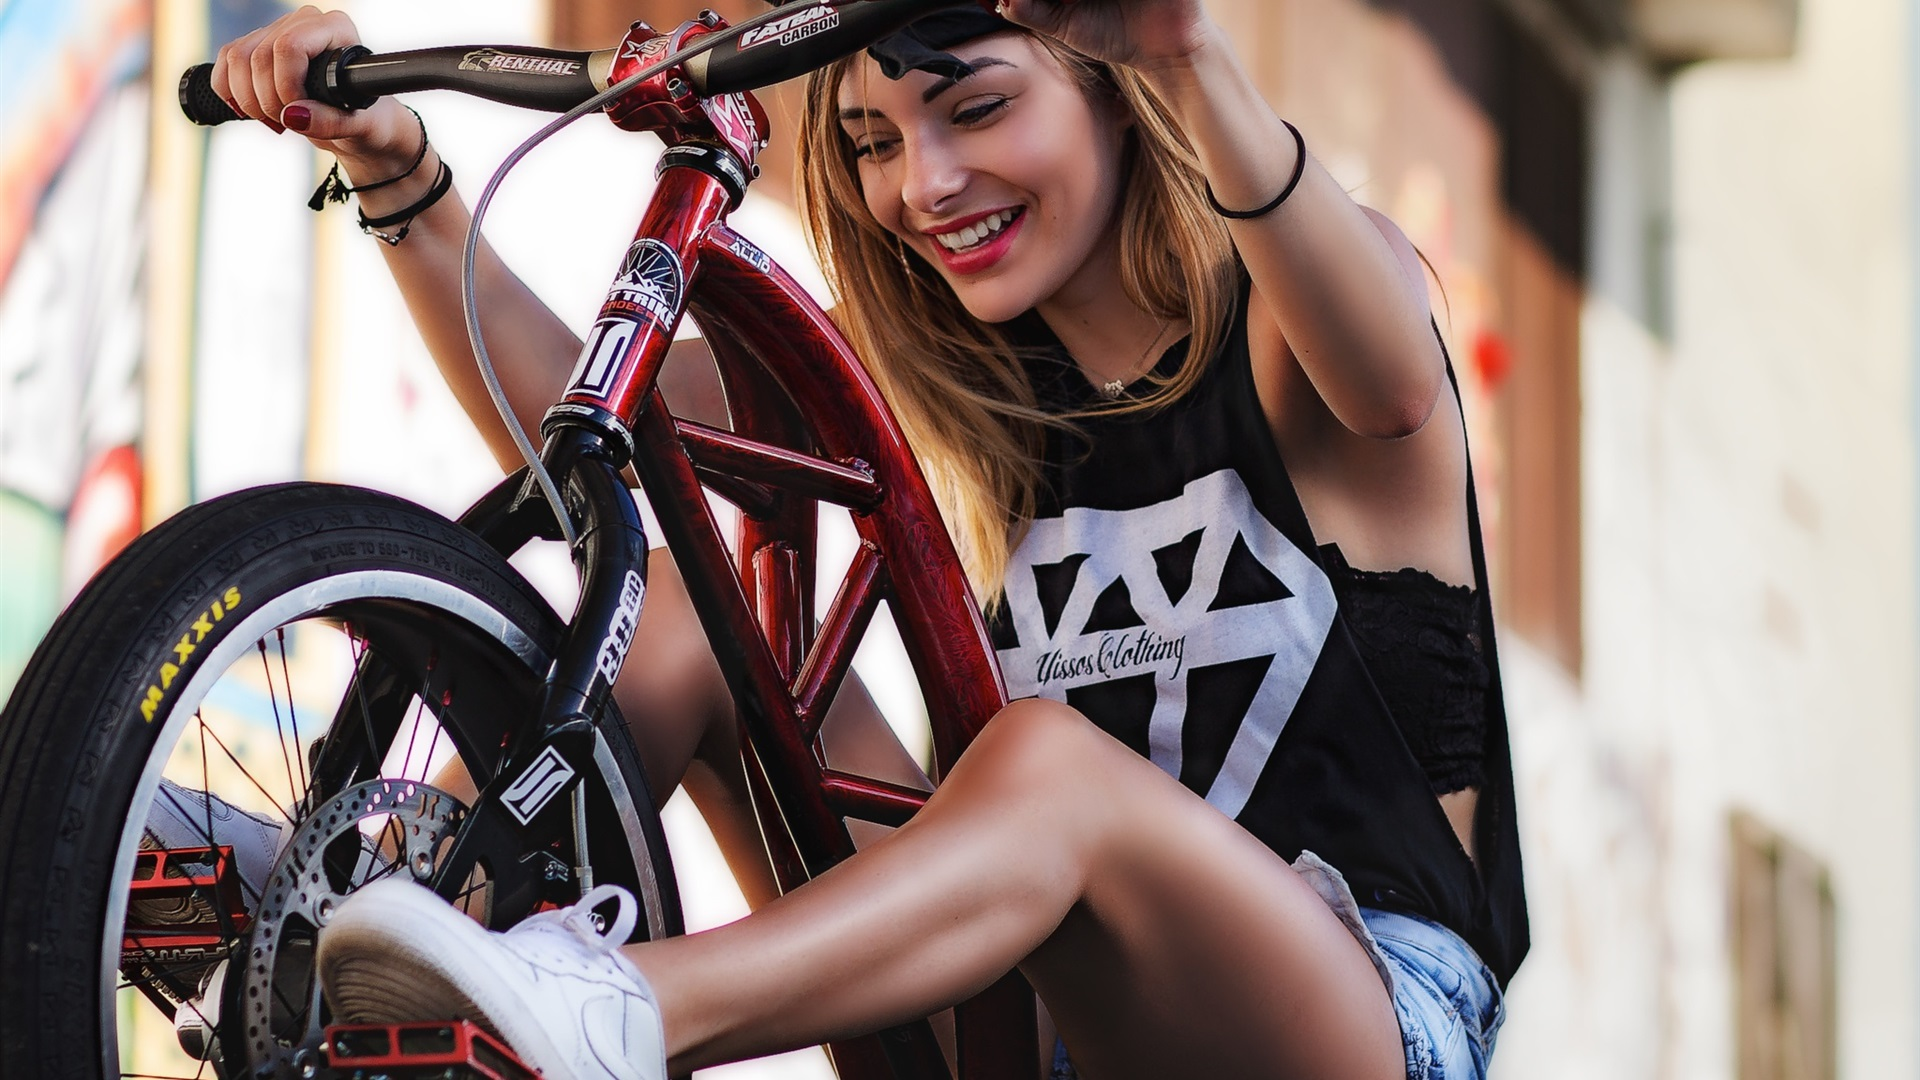 Deepthroat pictures of girls riding bikes out